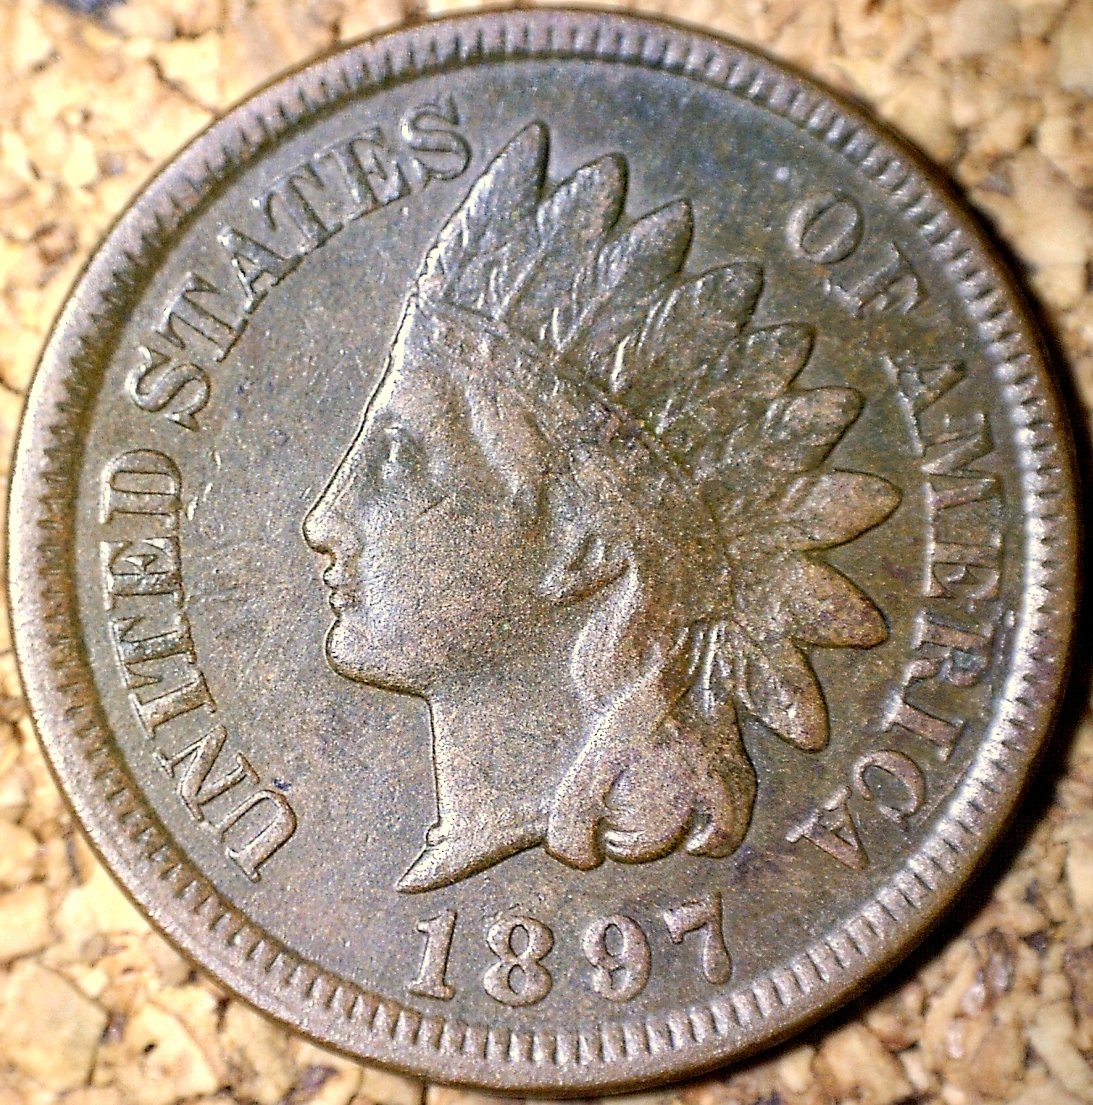 1897 RPD-017 - Indian Head Penny - Photo by David Killough